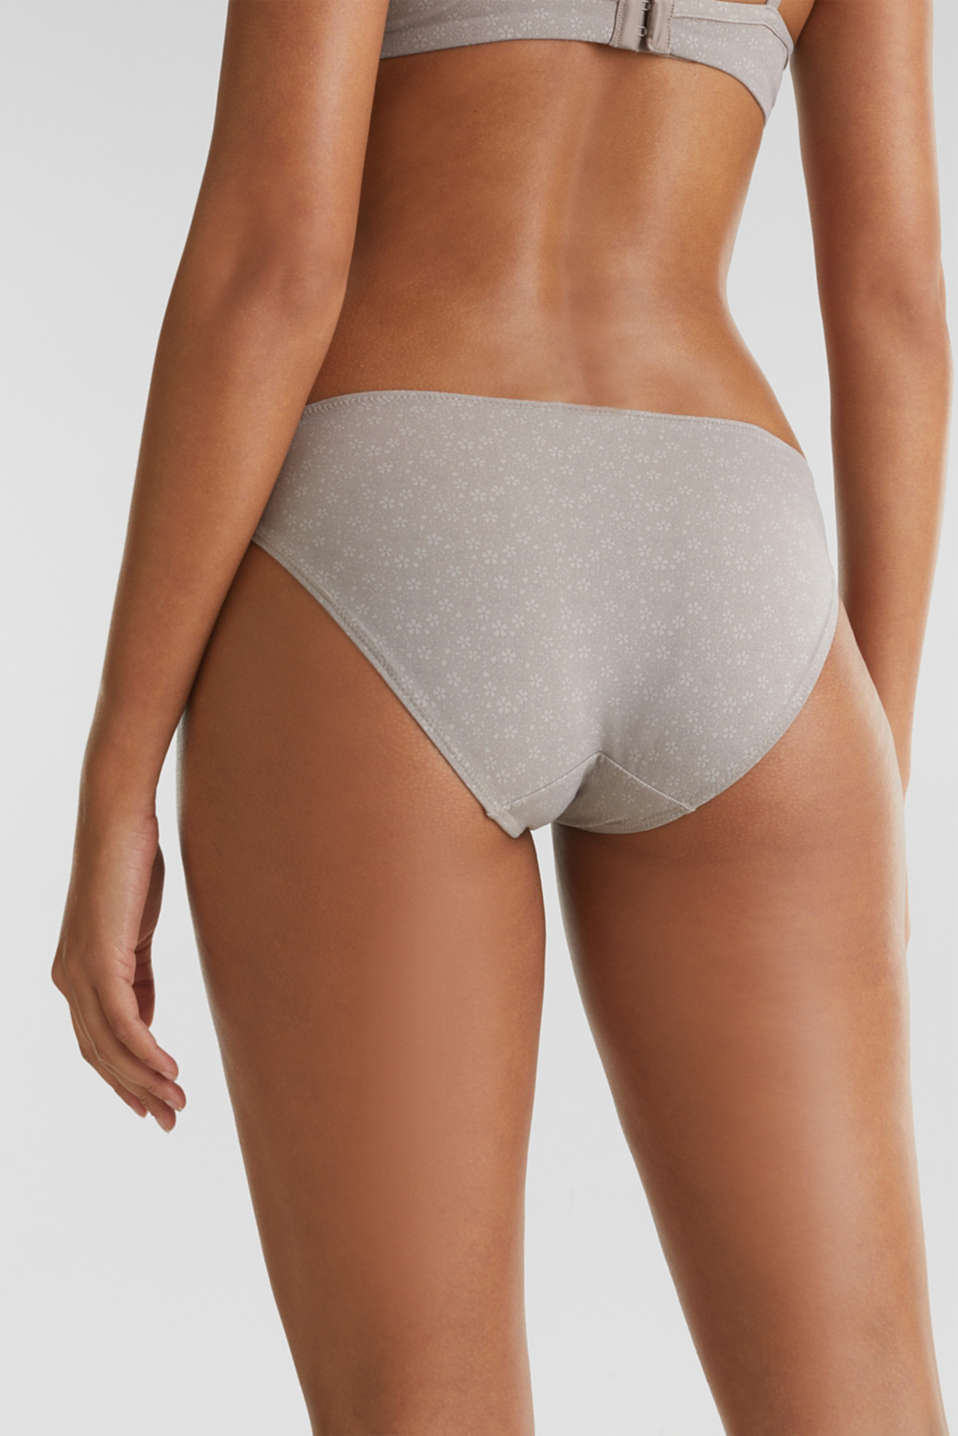 Double pack: Printed hipster briefs, TAUPE, detail image number 3